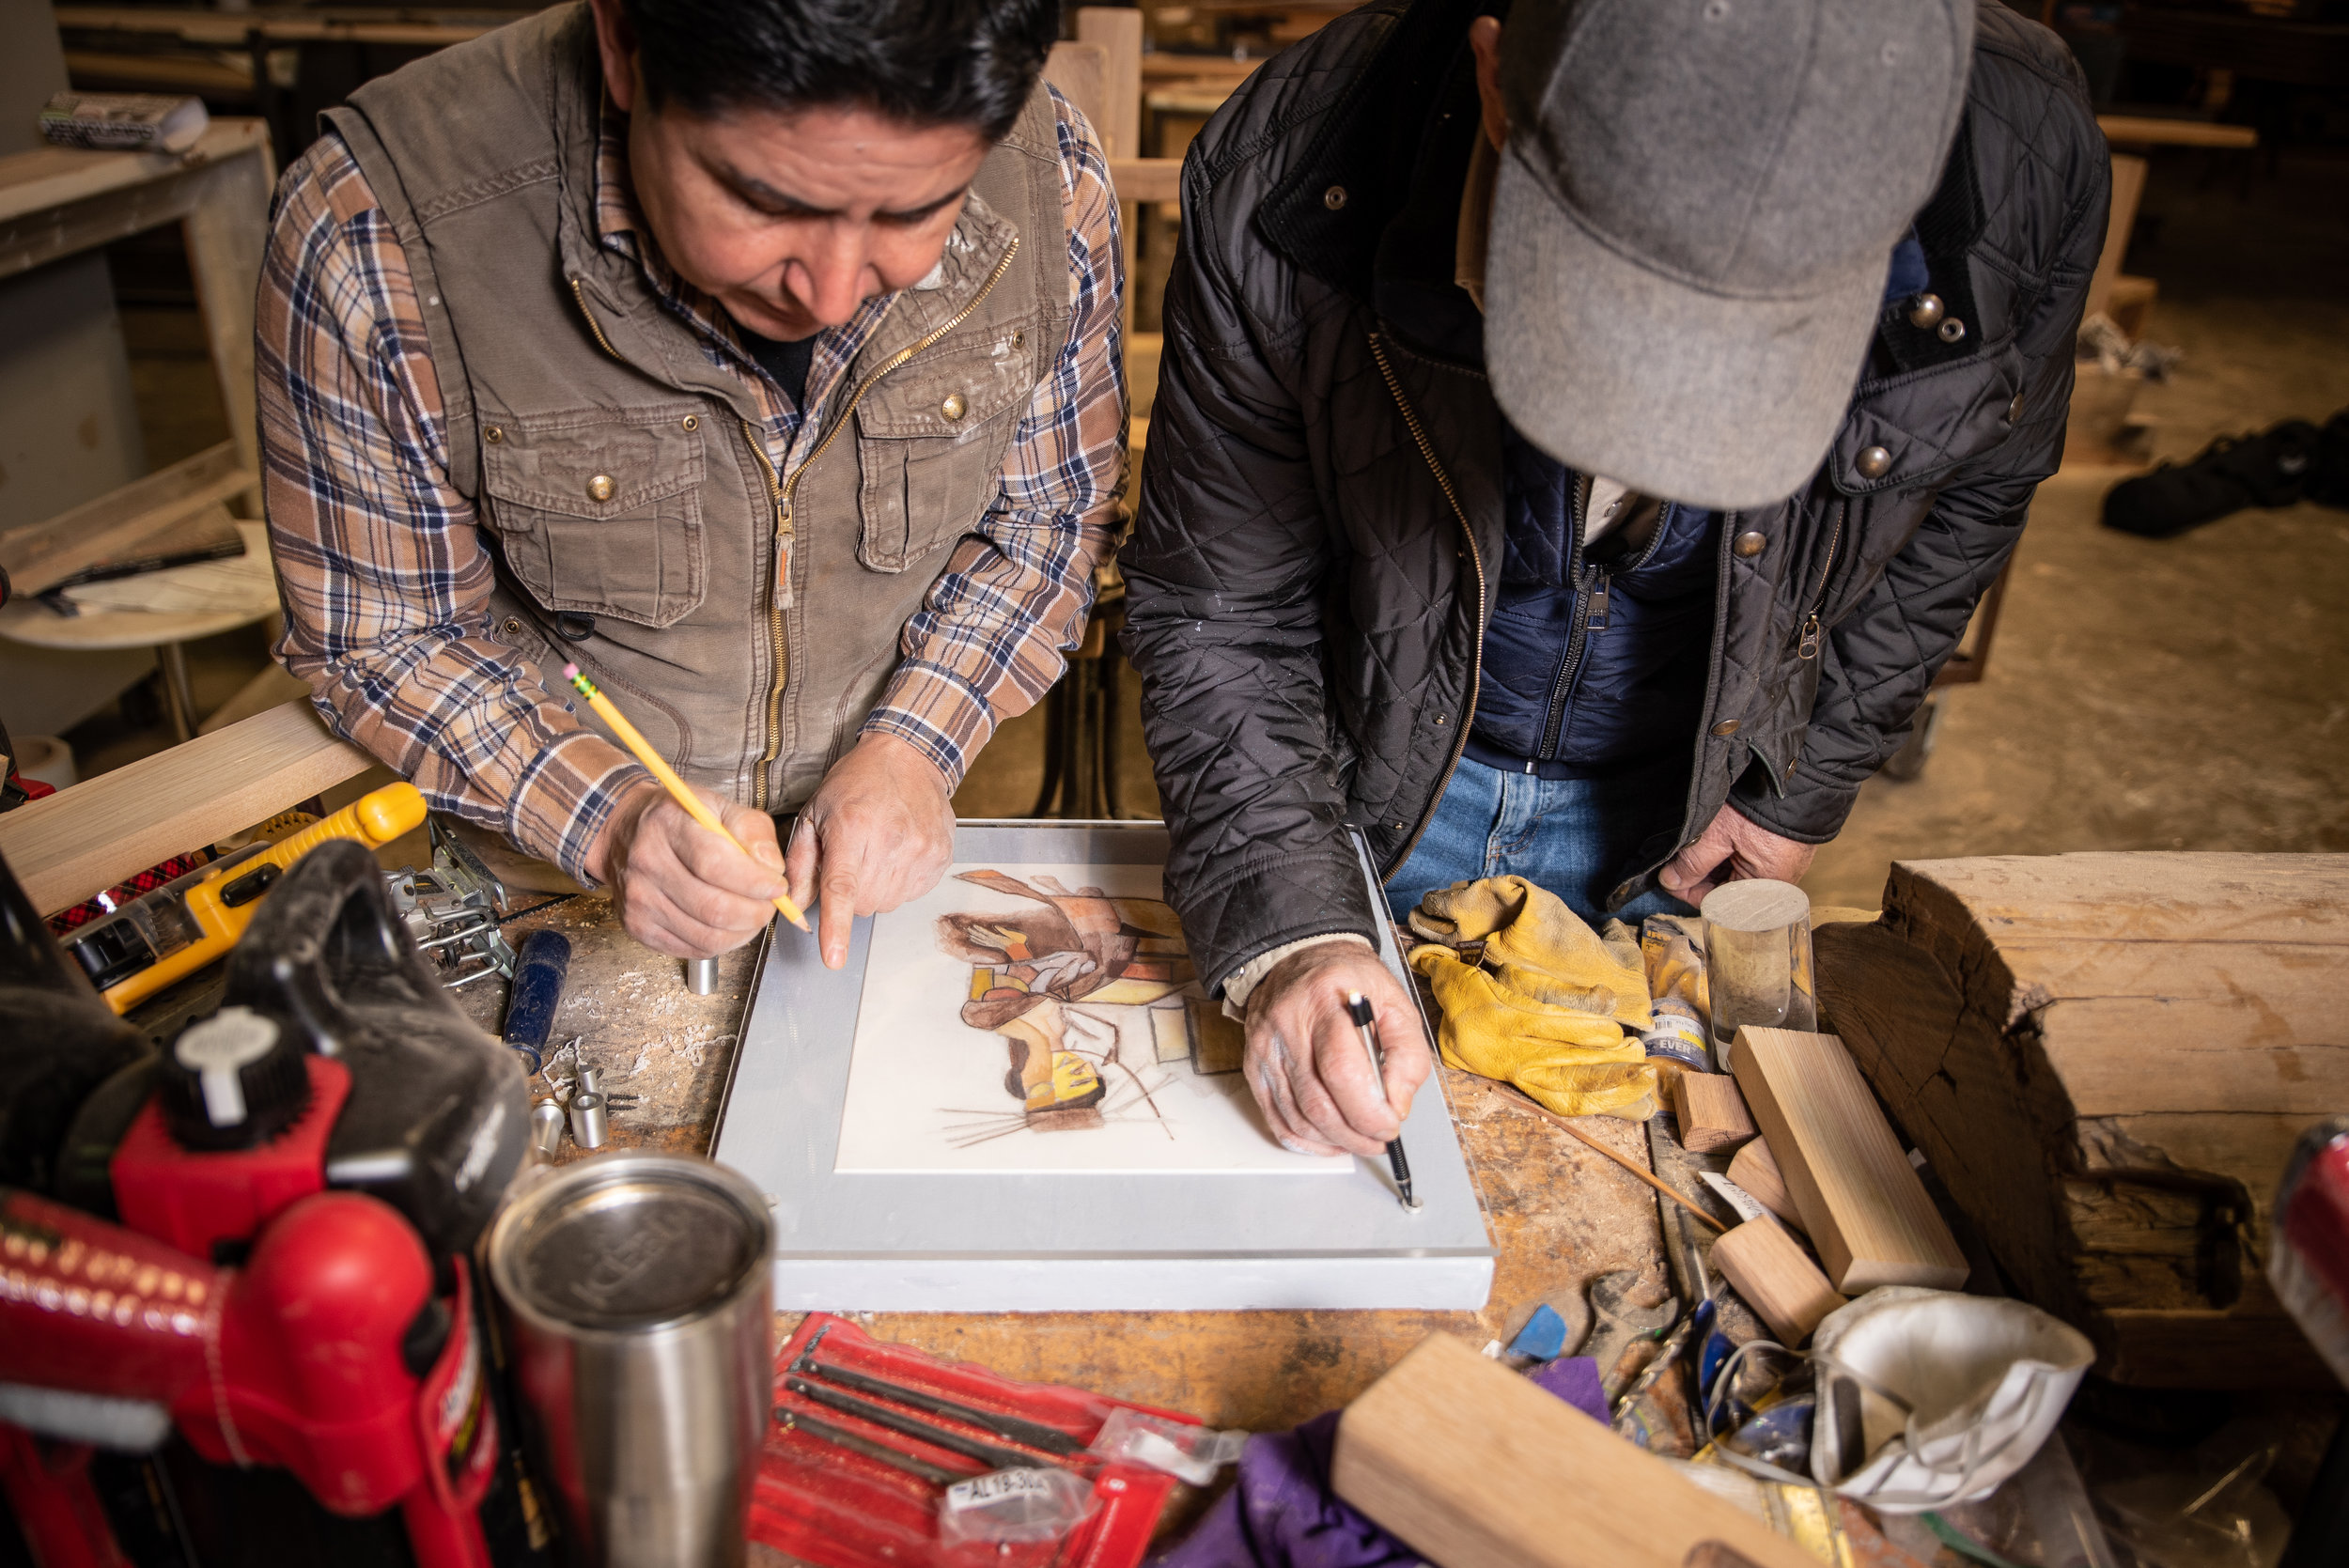 Paul and Salvador create a frame from an original piece of art. Photo by Ashlee Nobel